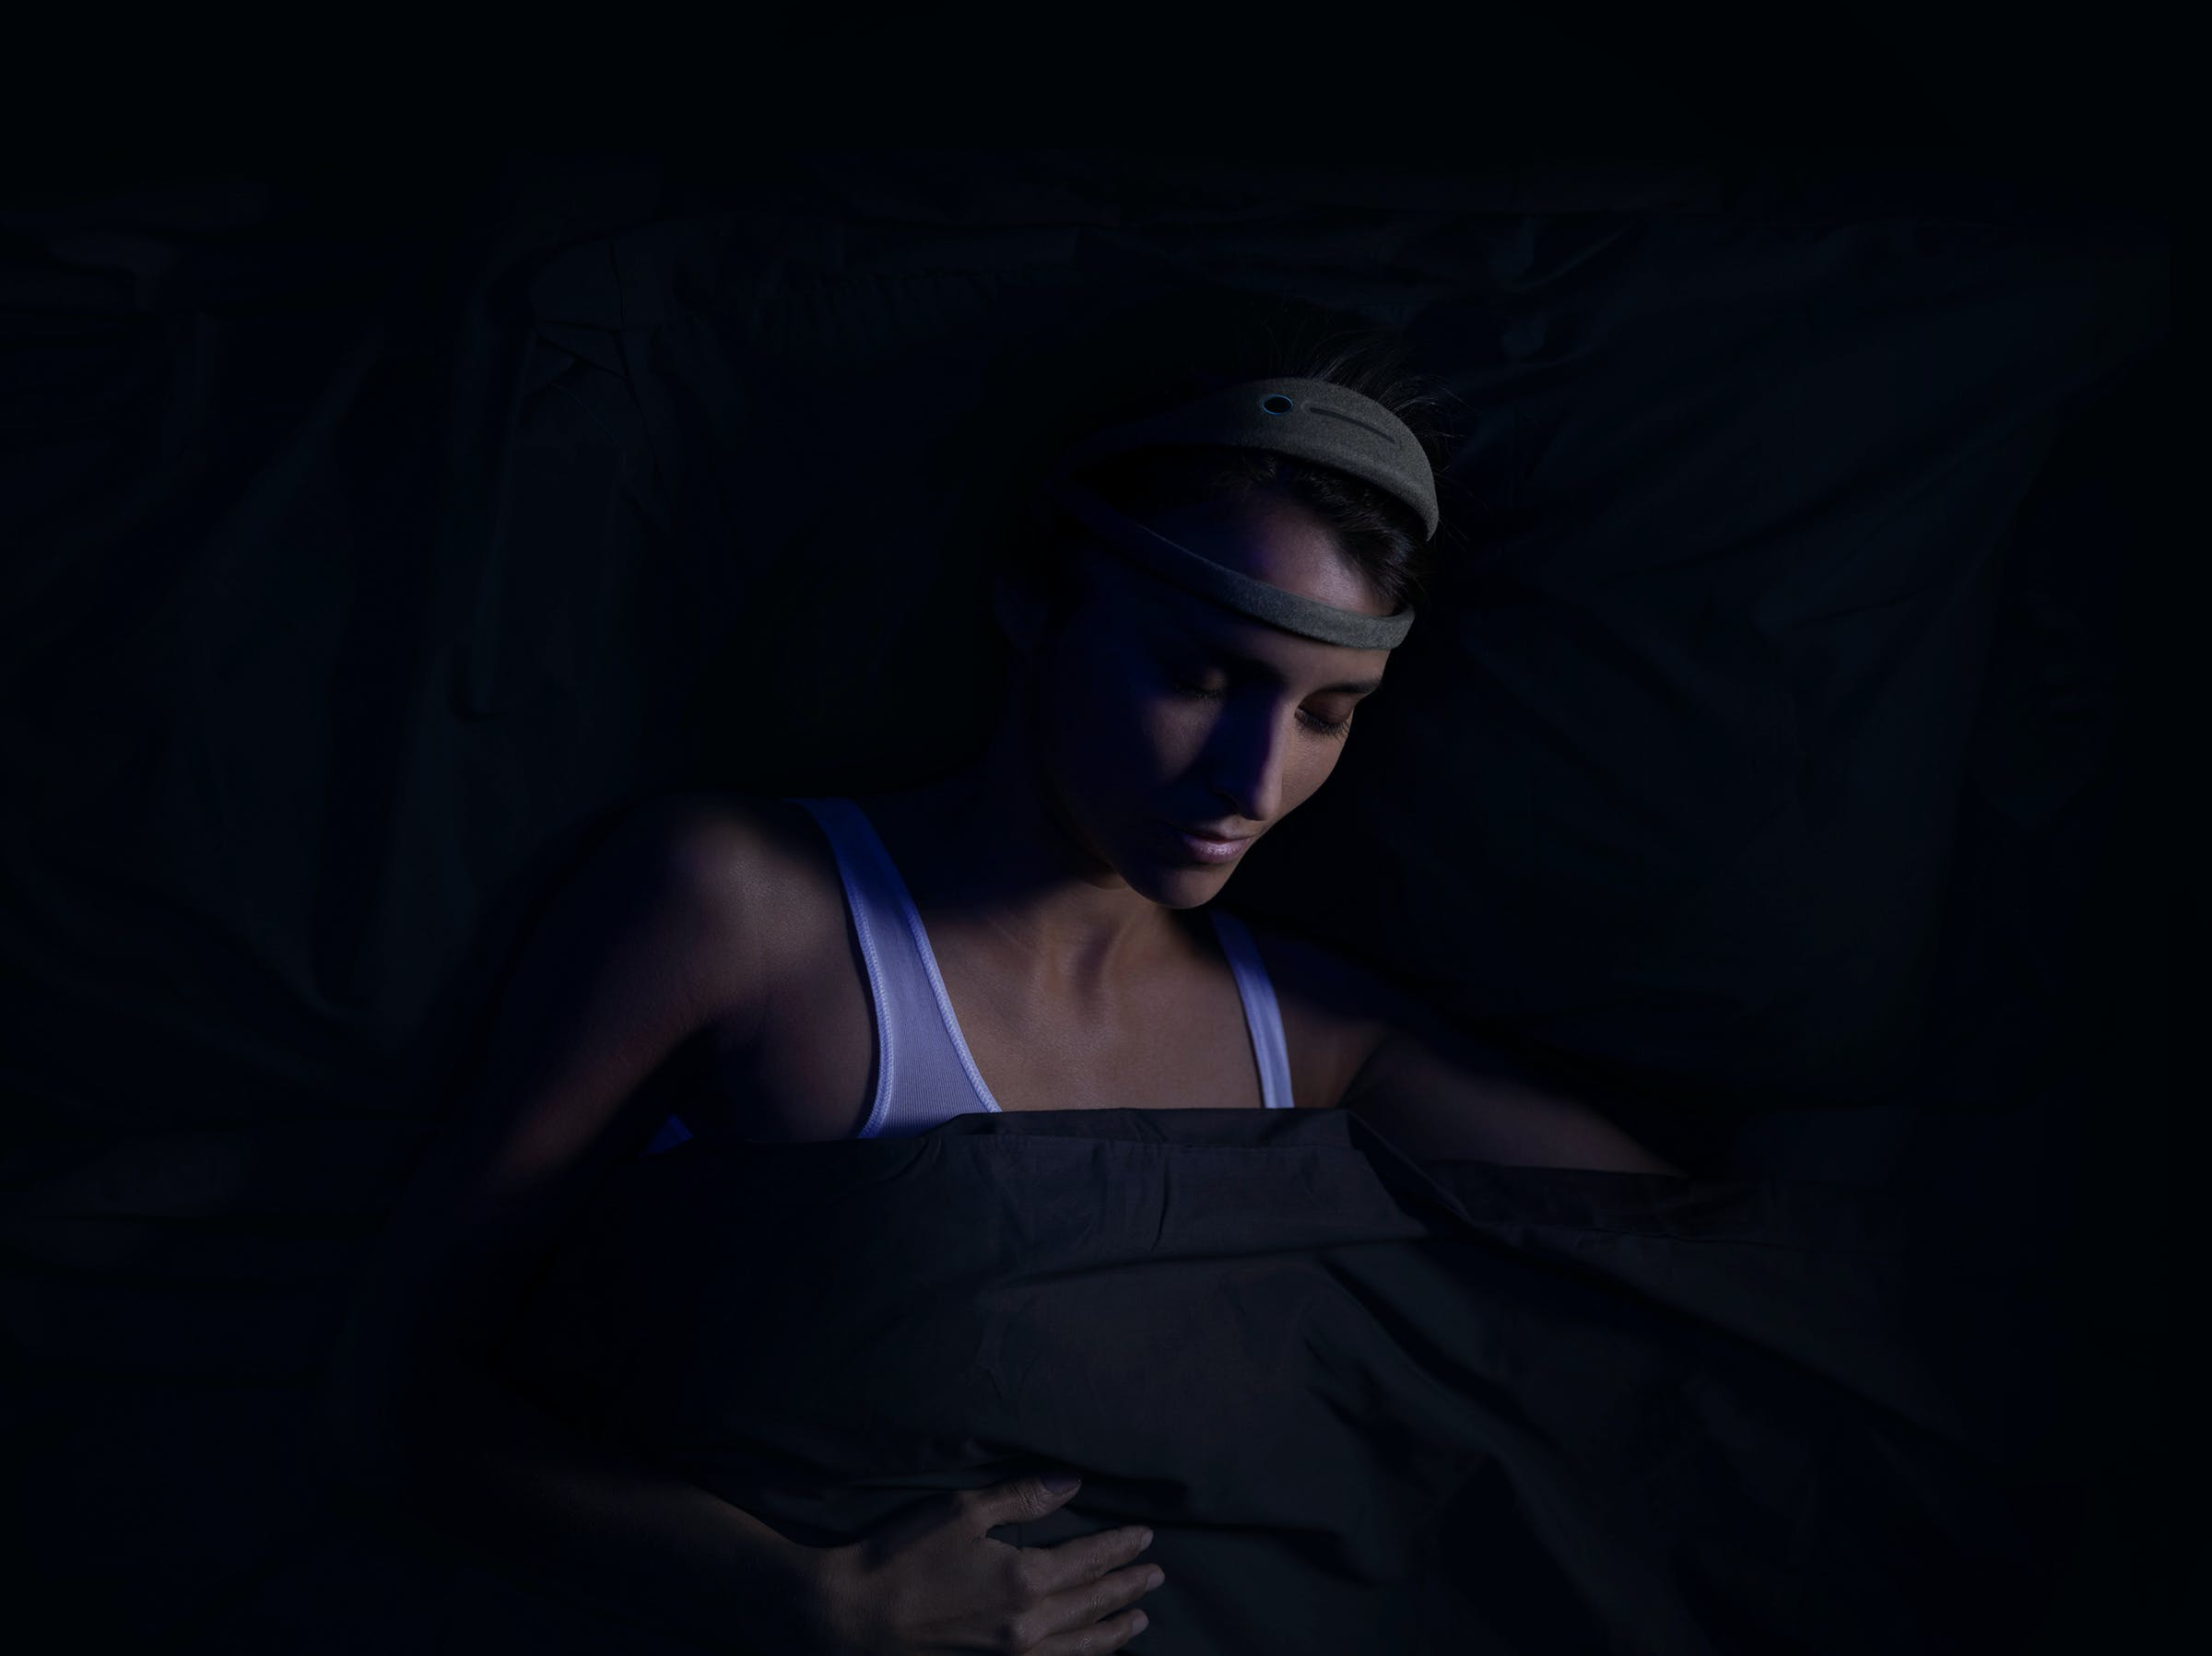 How to Sleep Better and Deeper by Analyzing Your Brainwaves